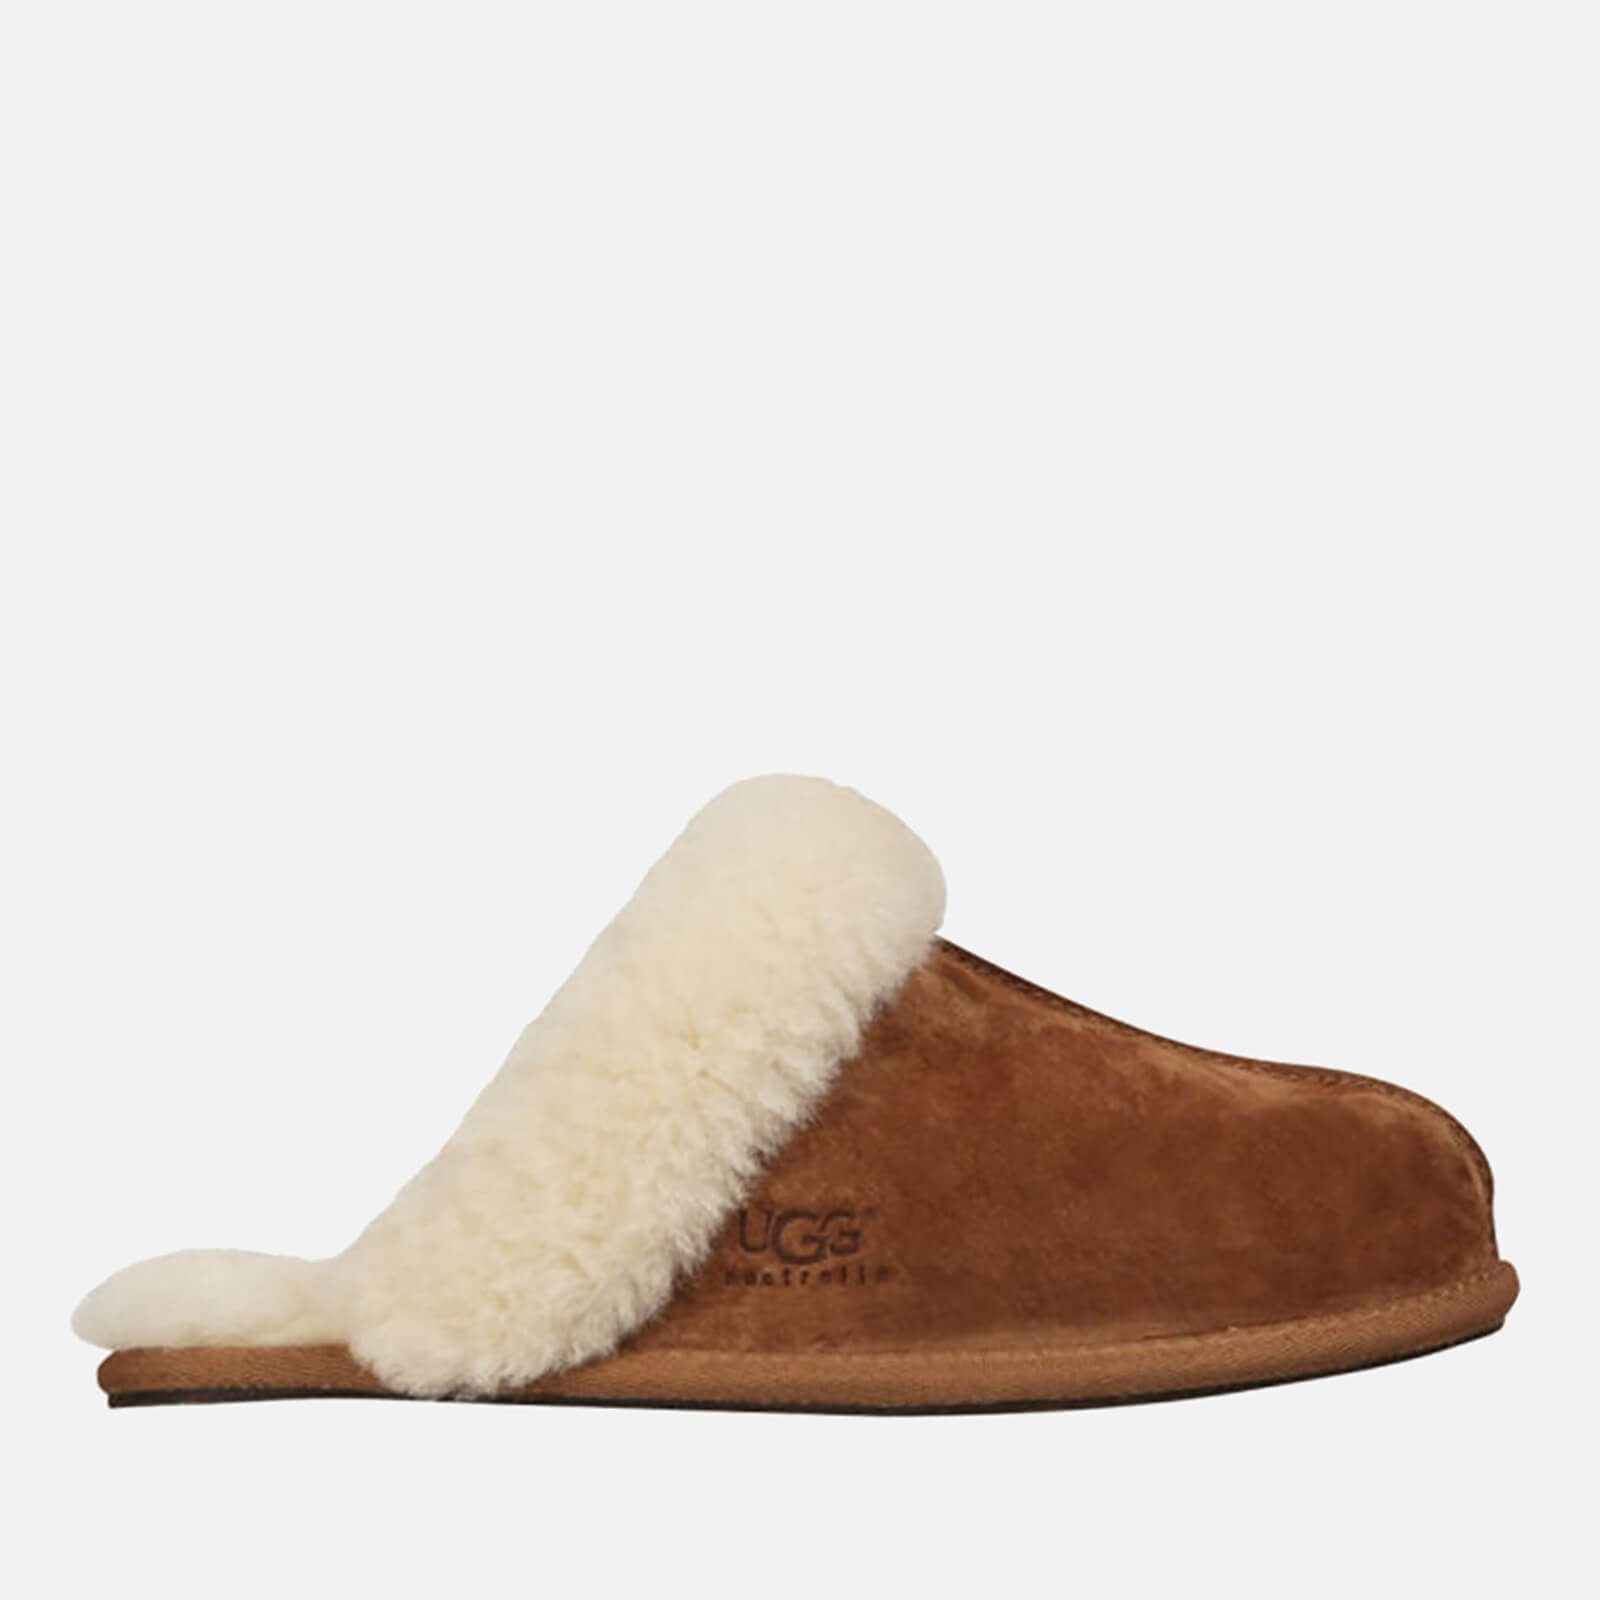 d09db6a9cf04b1 UGG Women s Scuffette II Sheepskin Slippers - Chestnut - Free UK Delivery  over £50